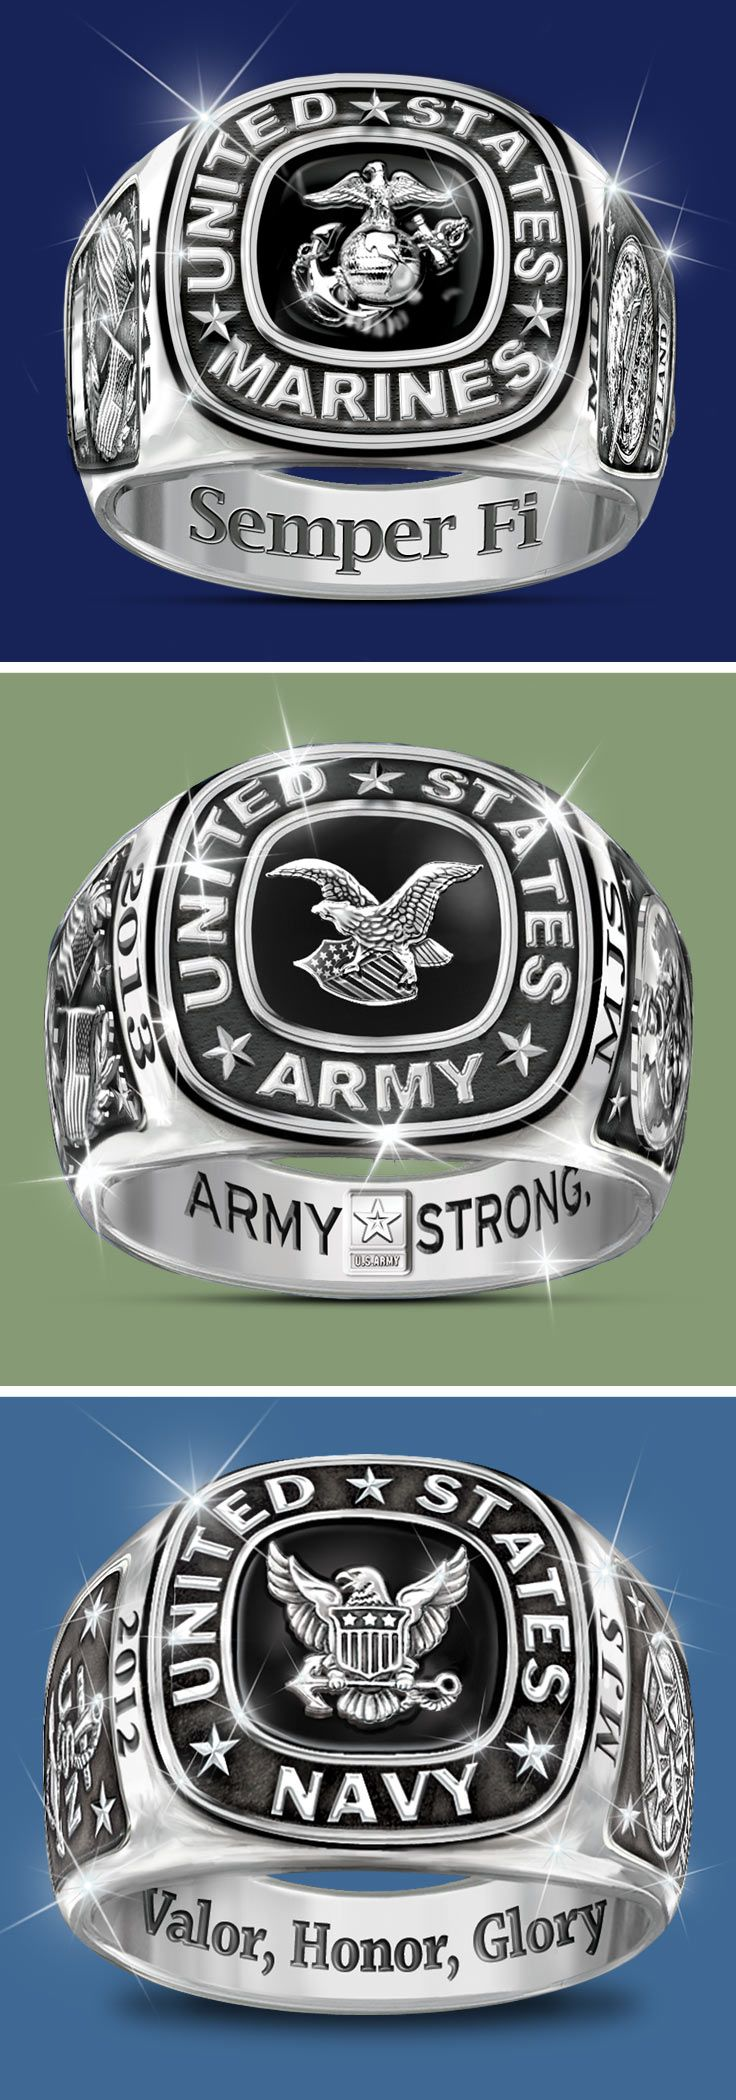 academy category product petite police nyk sbmai silver oval rings tdg or maritime ring military